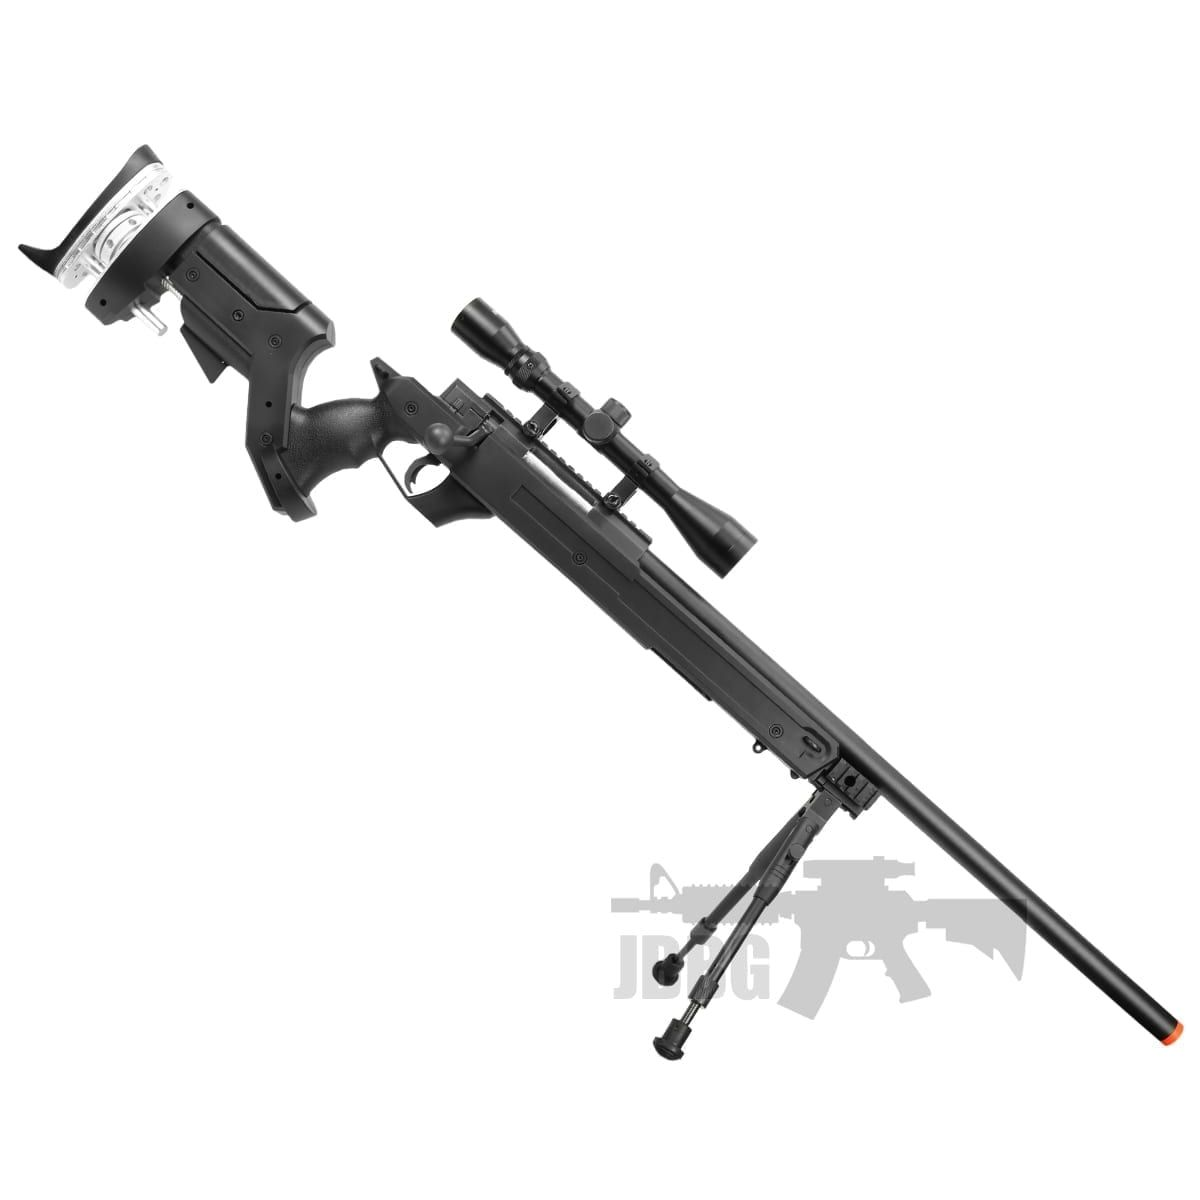 mb05 airsoft sniper rifle